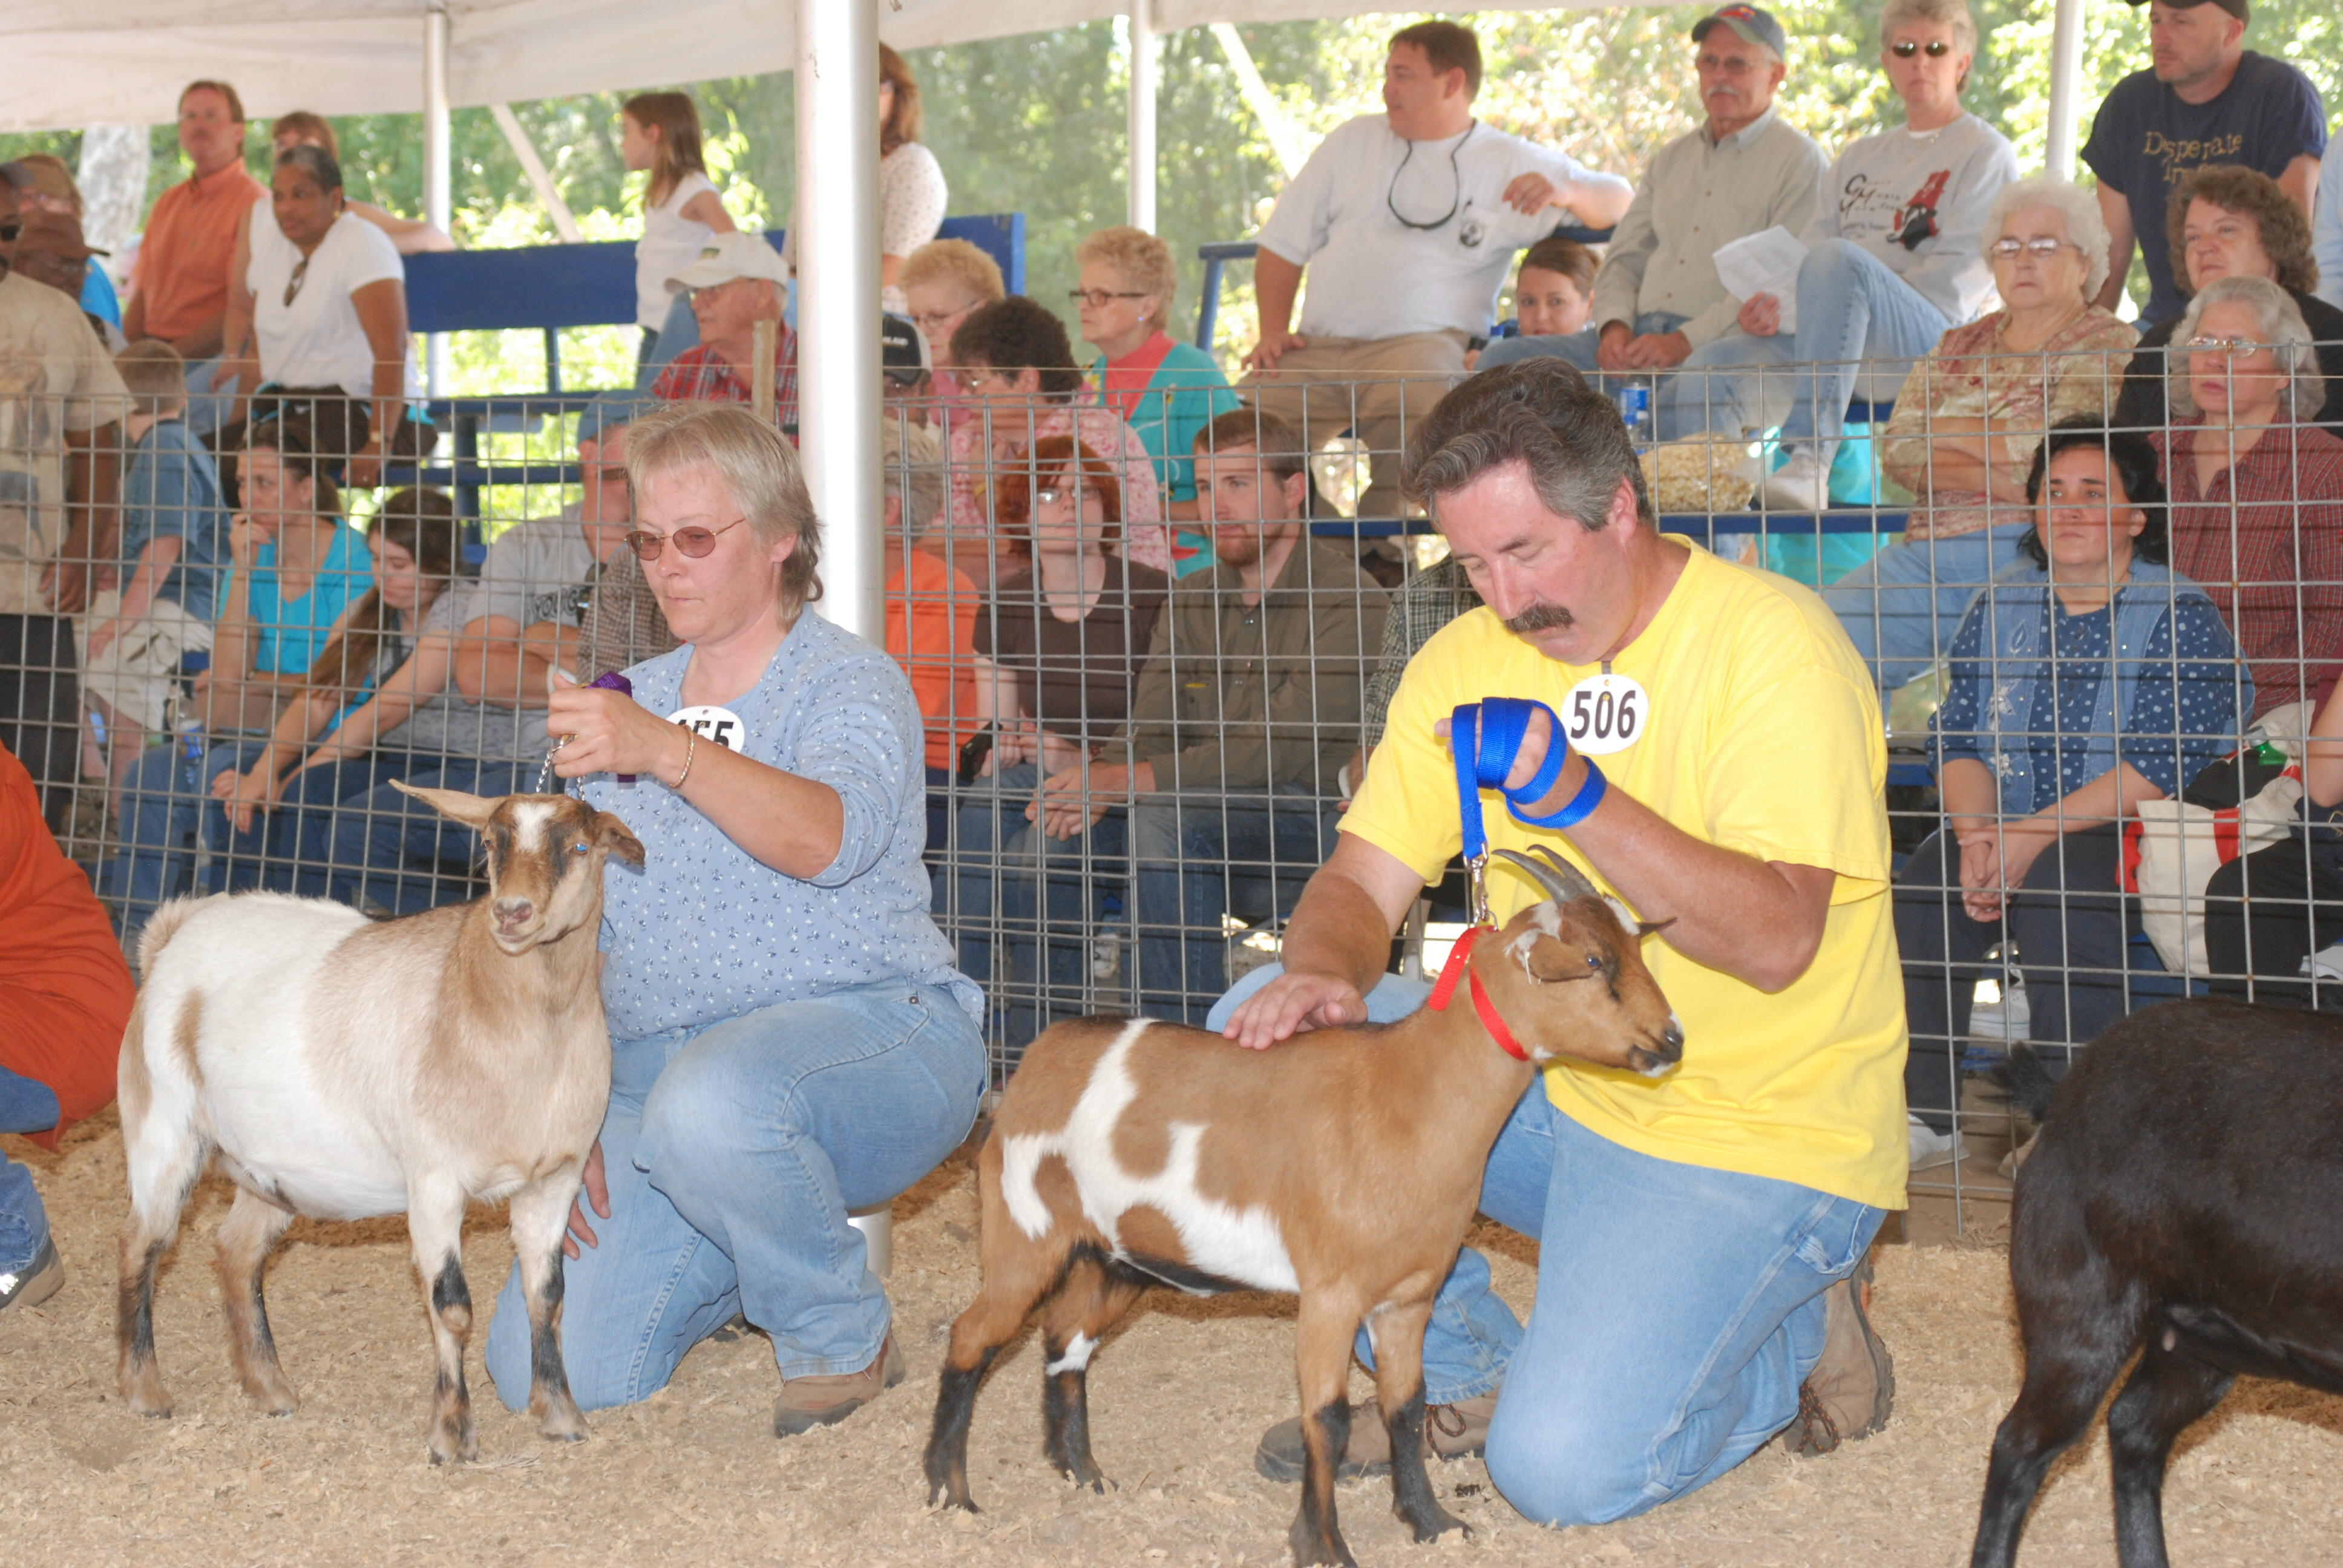 Goats, Music & More Festival, Lewisburg